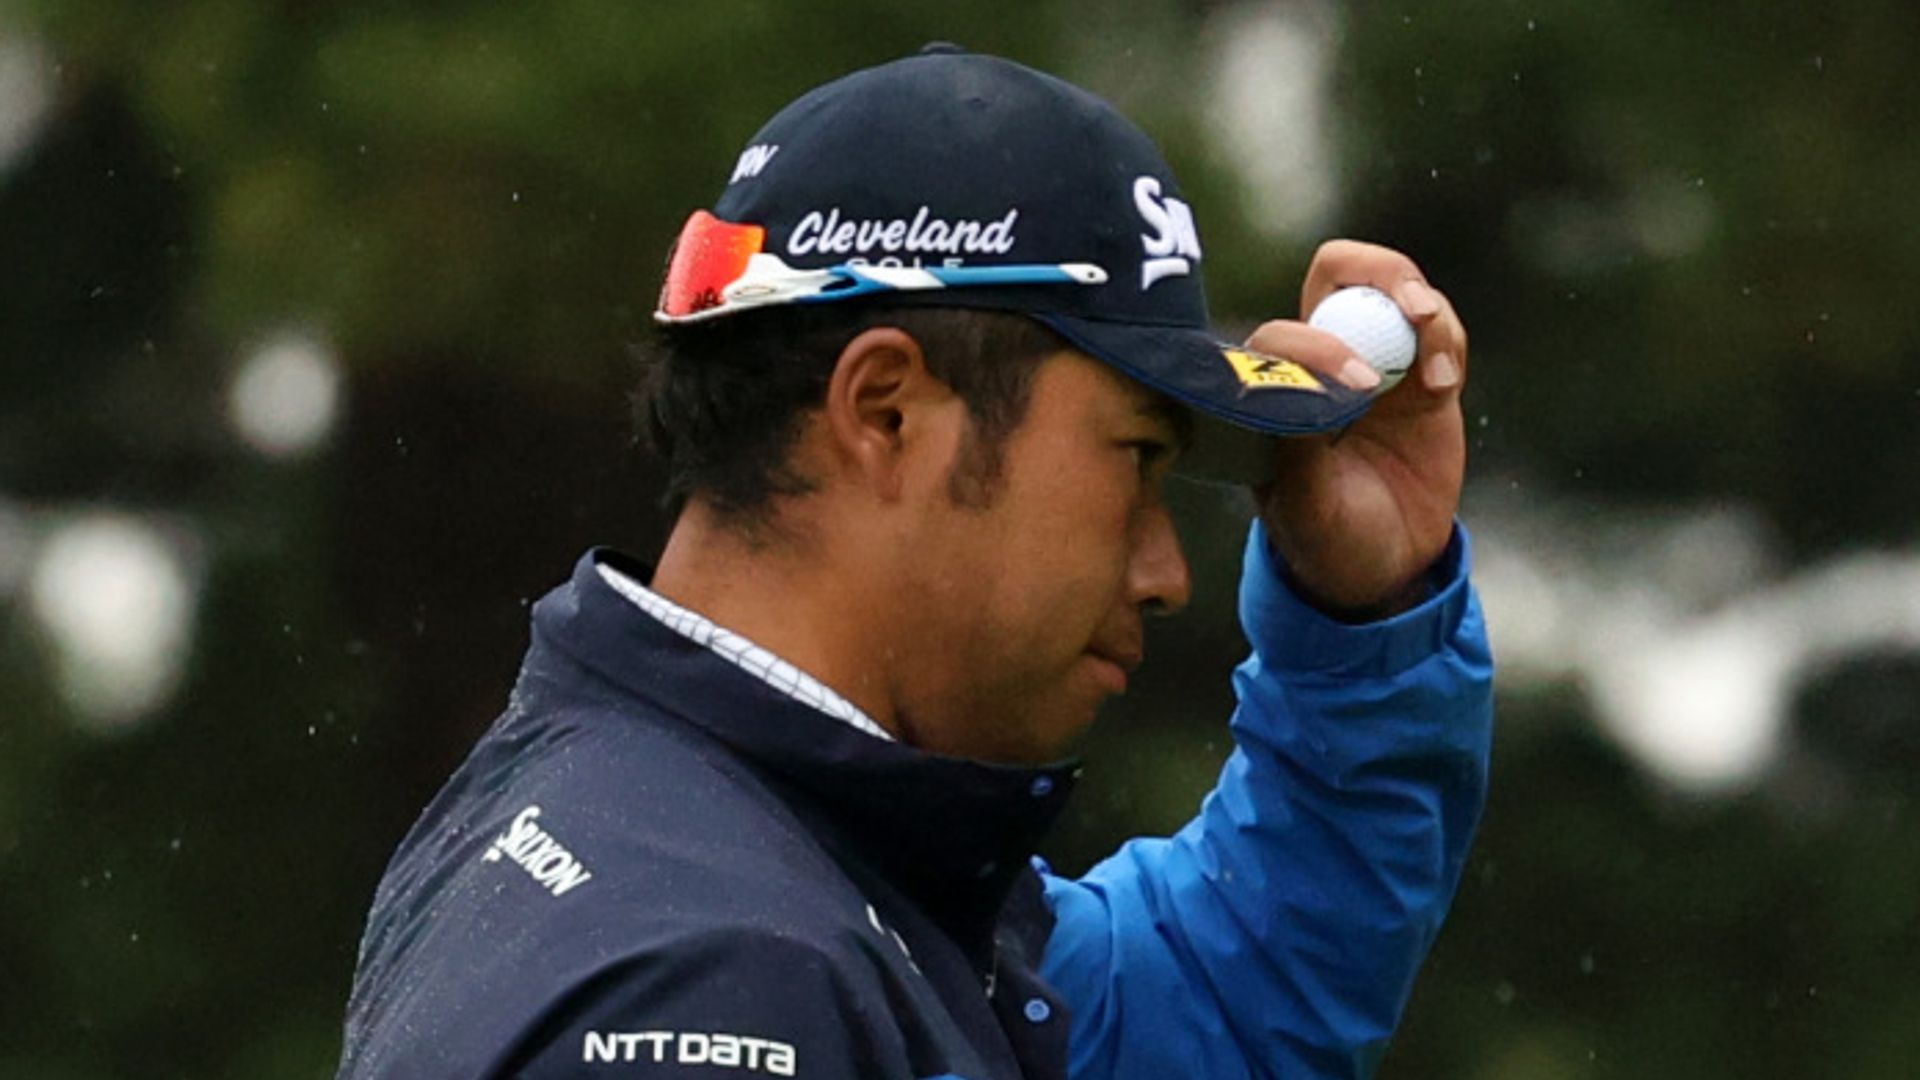 Matsuyama leads, Wallace surges into contention